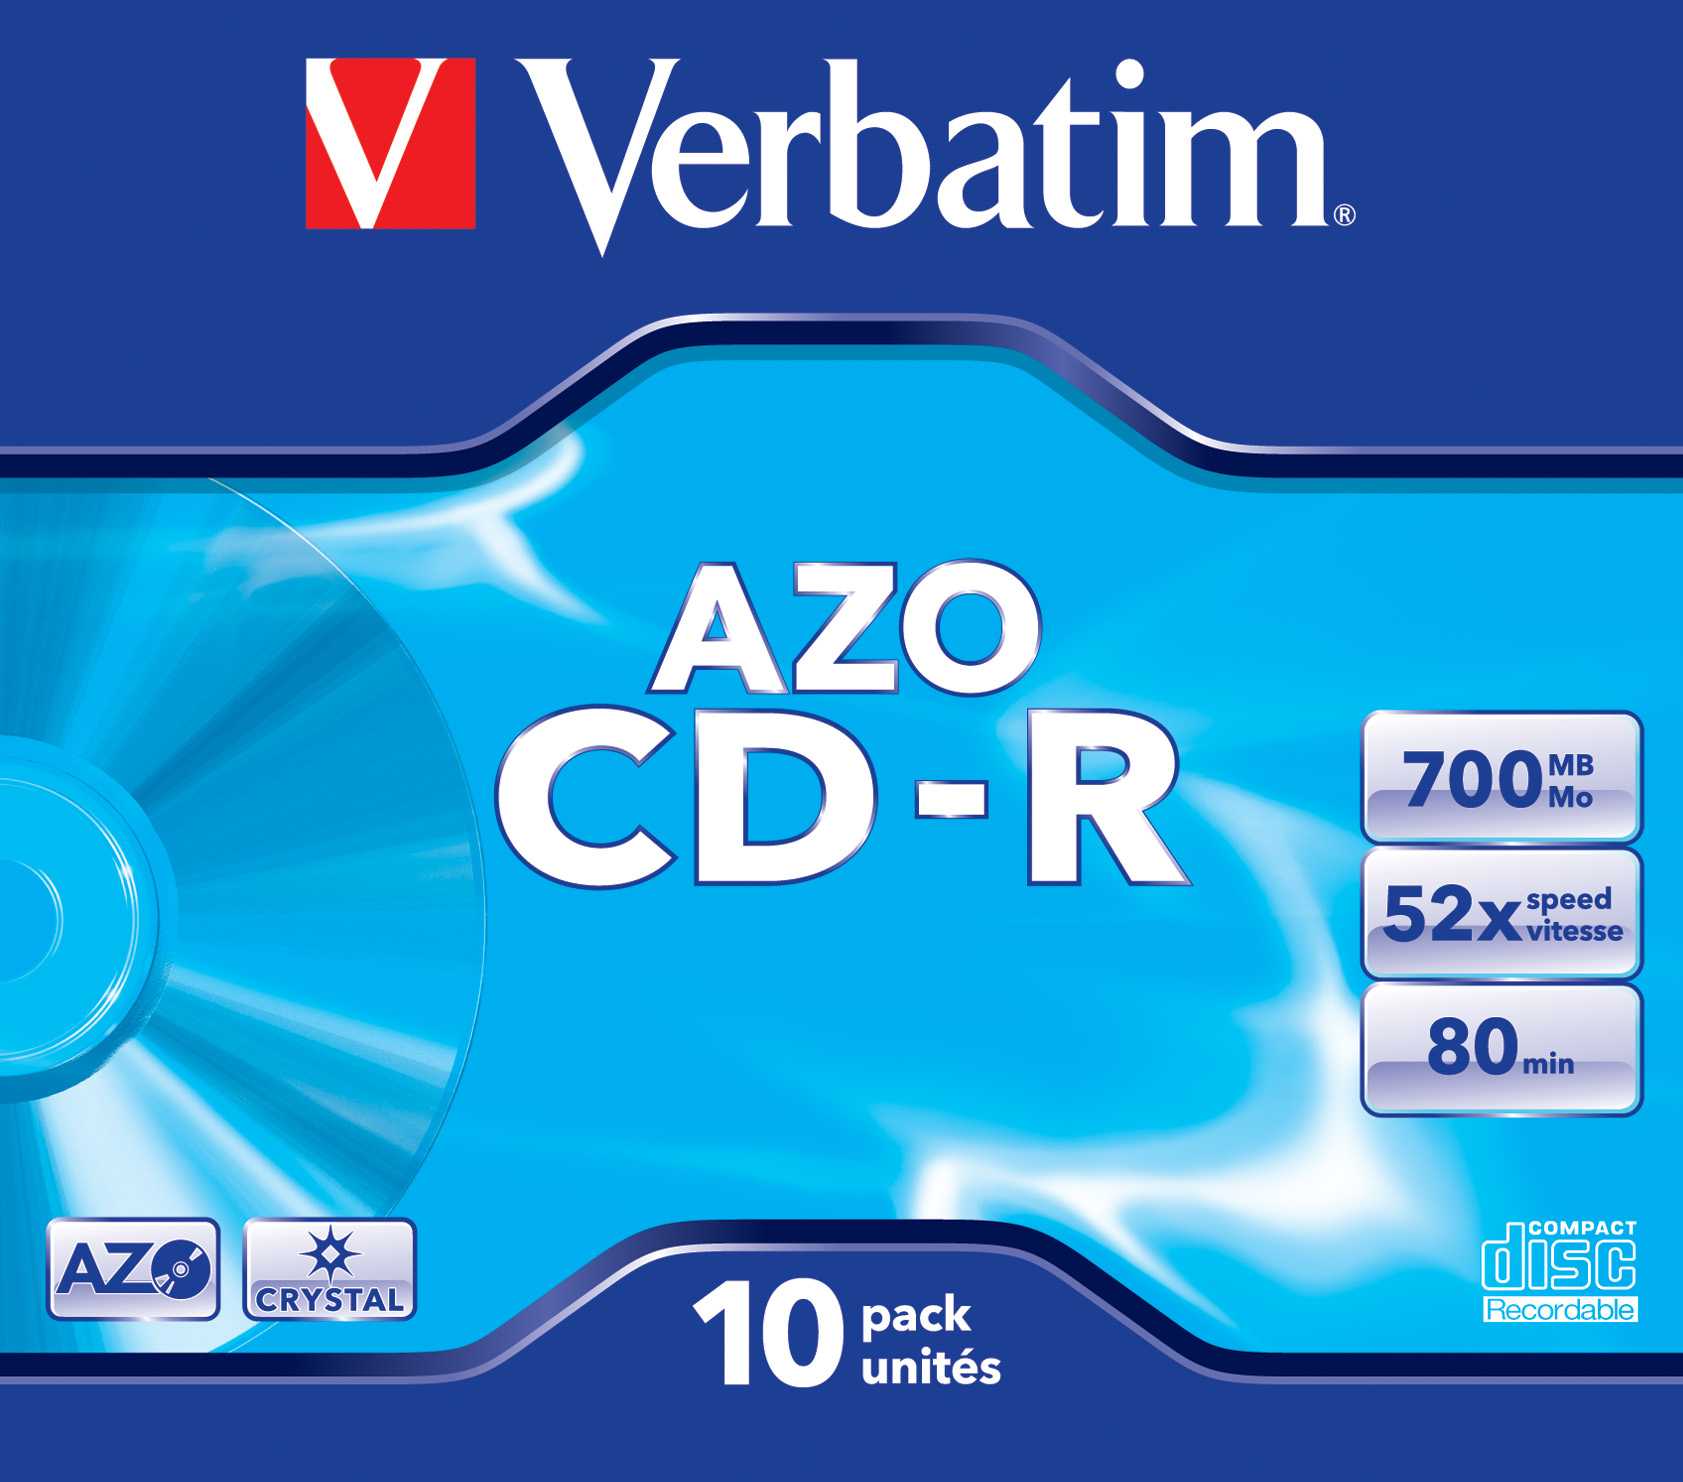 CD-R 700 MB, 52 speed (Super AZO Crystal Surface, 10-pack jewelcase)